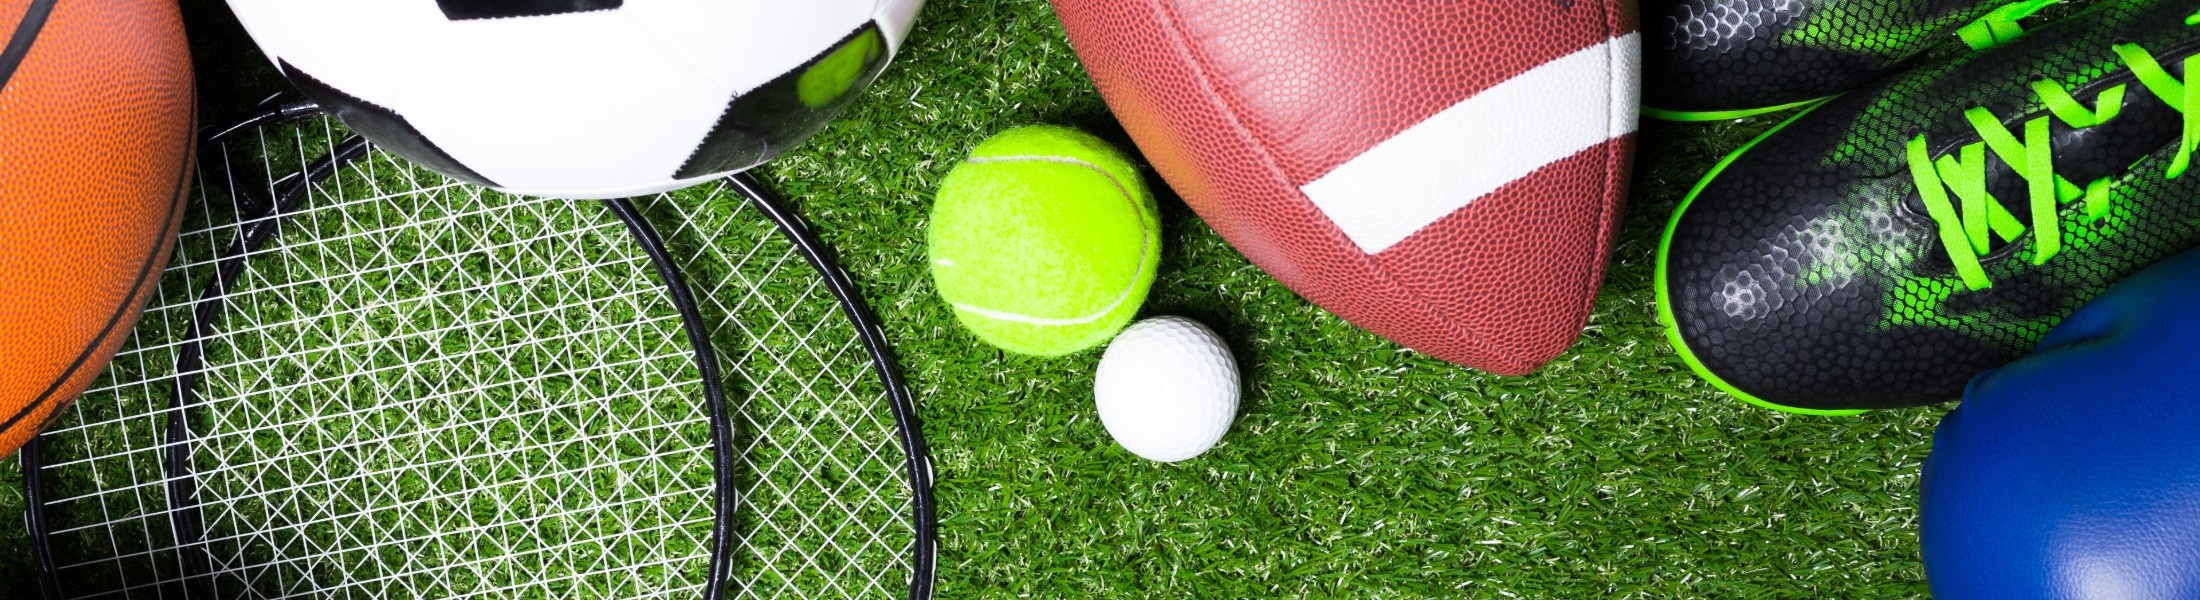 A selection of sporting equipment on grass